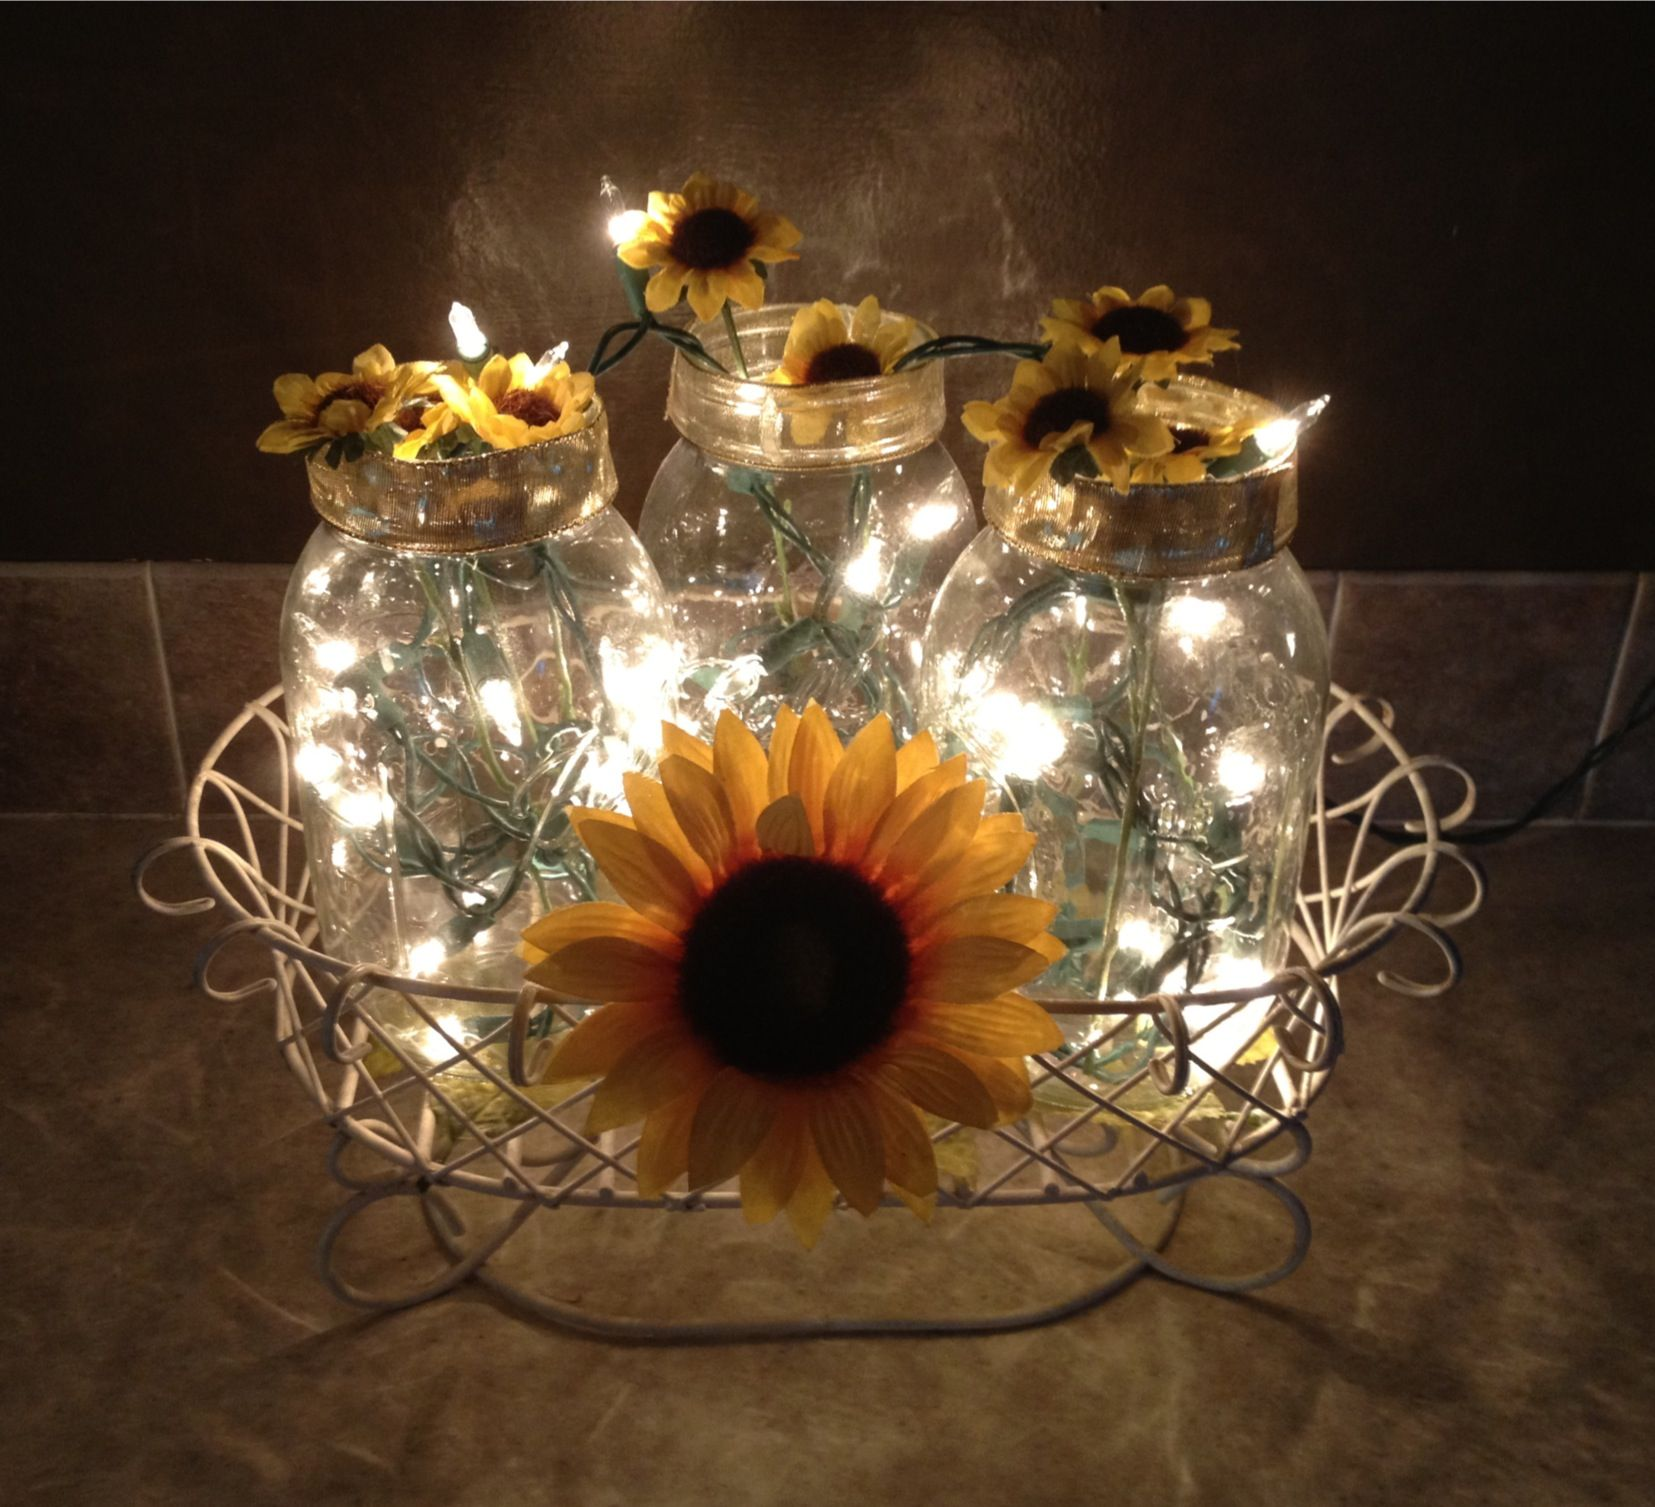 Best 25 Sunflower themed kitchen ideas on Pinterest